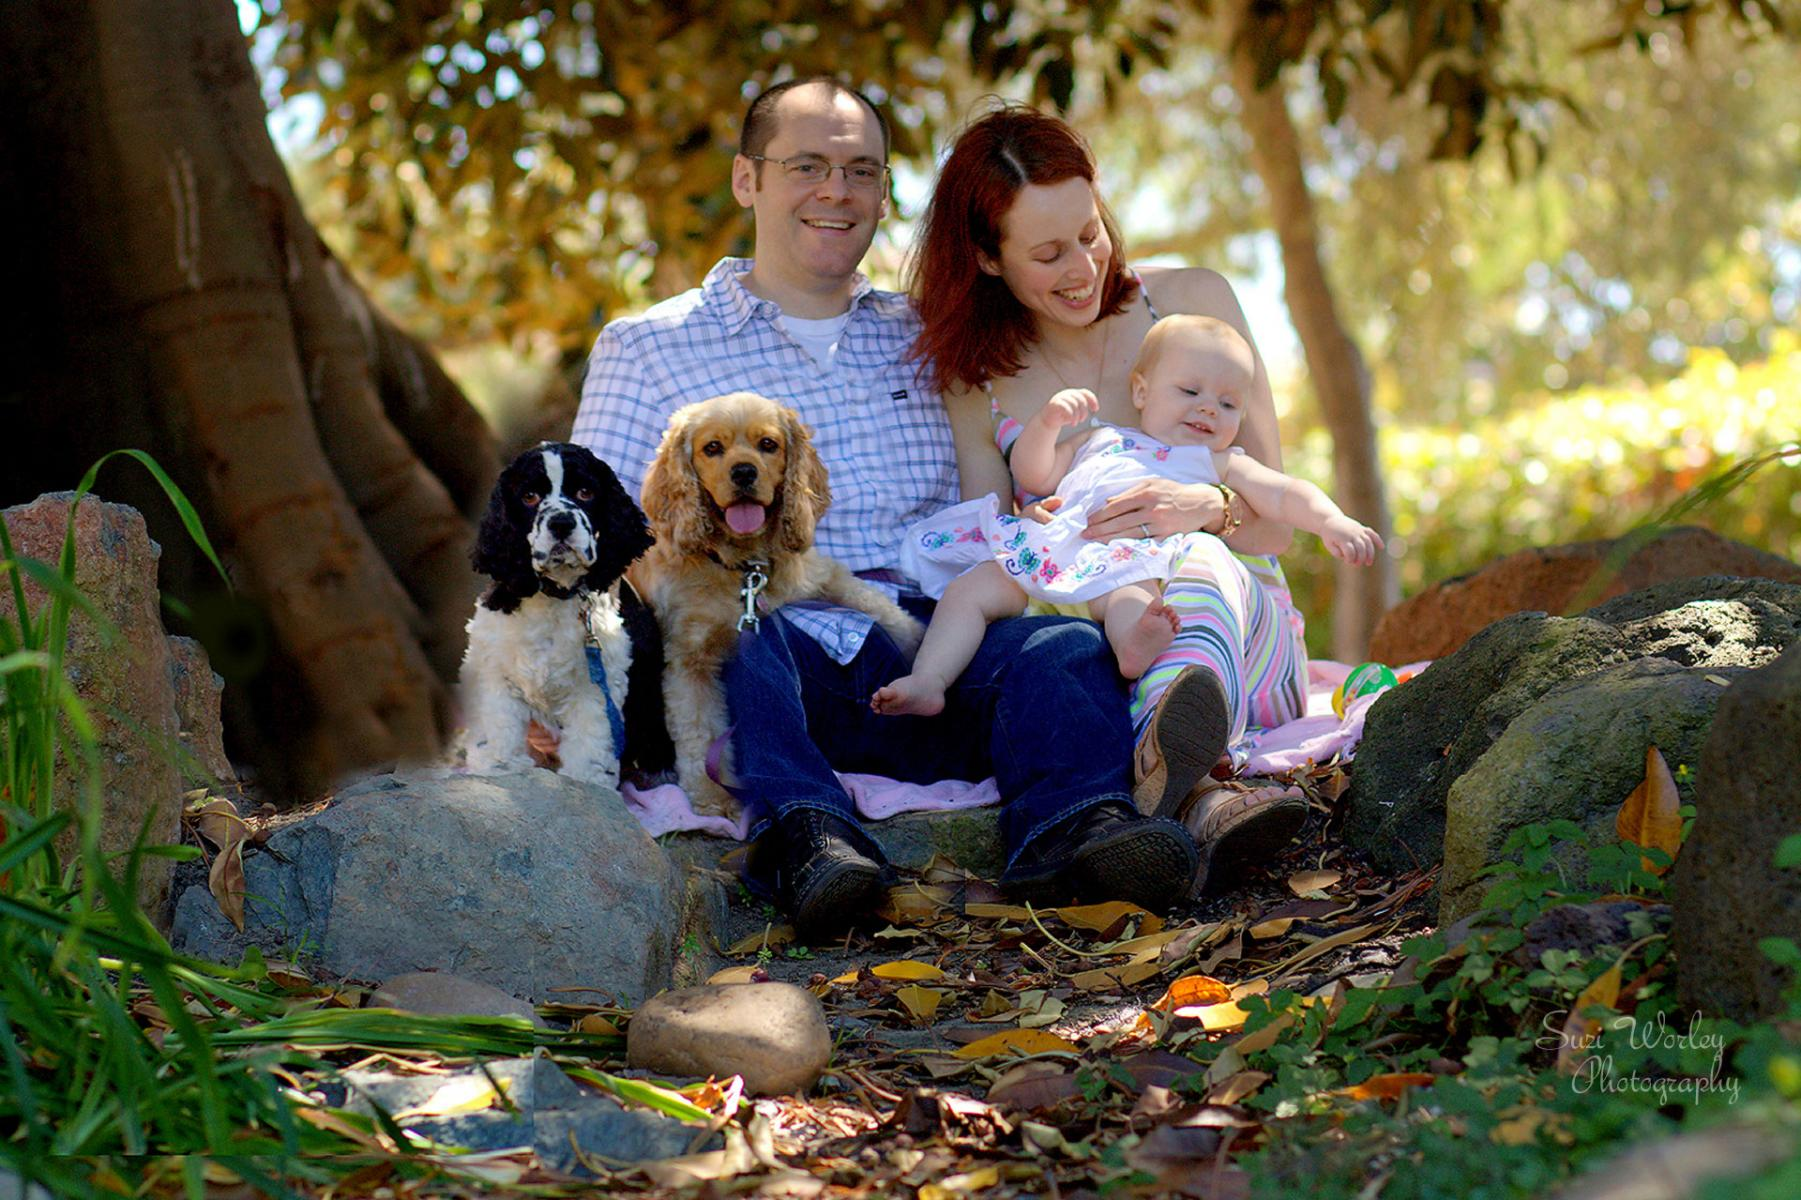 A young family with their pups.  #SuziWorleyPhotography #Portraits #family #dogs  #nature